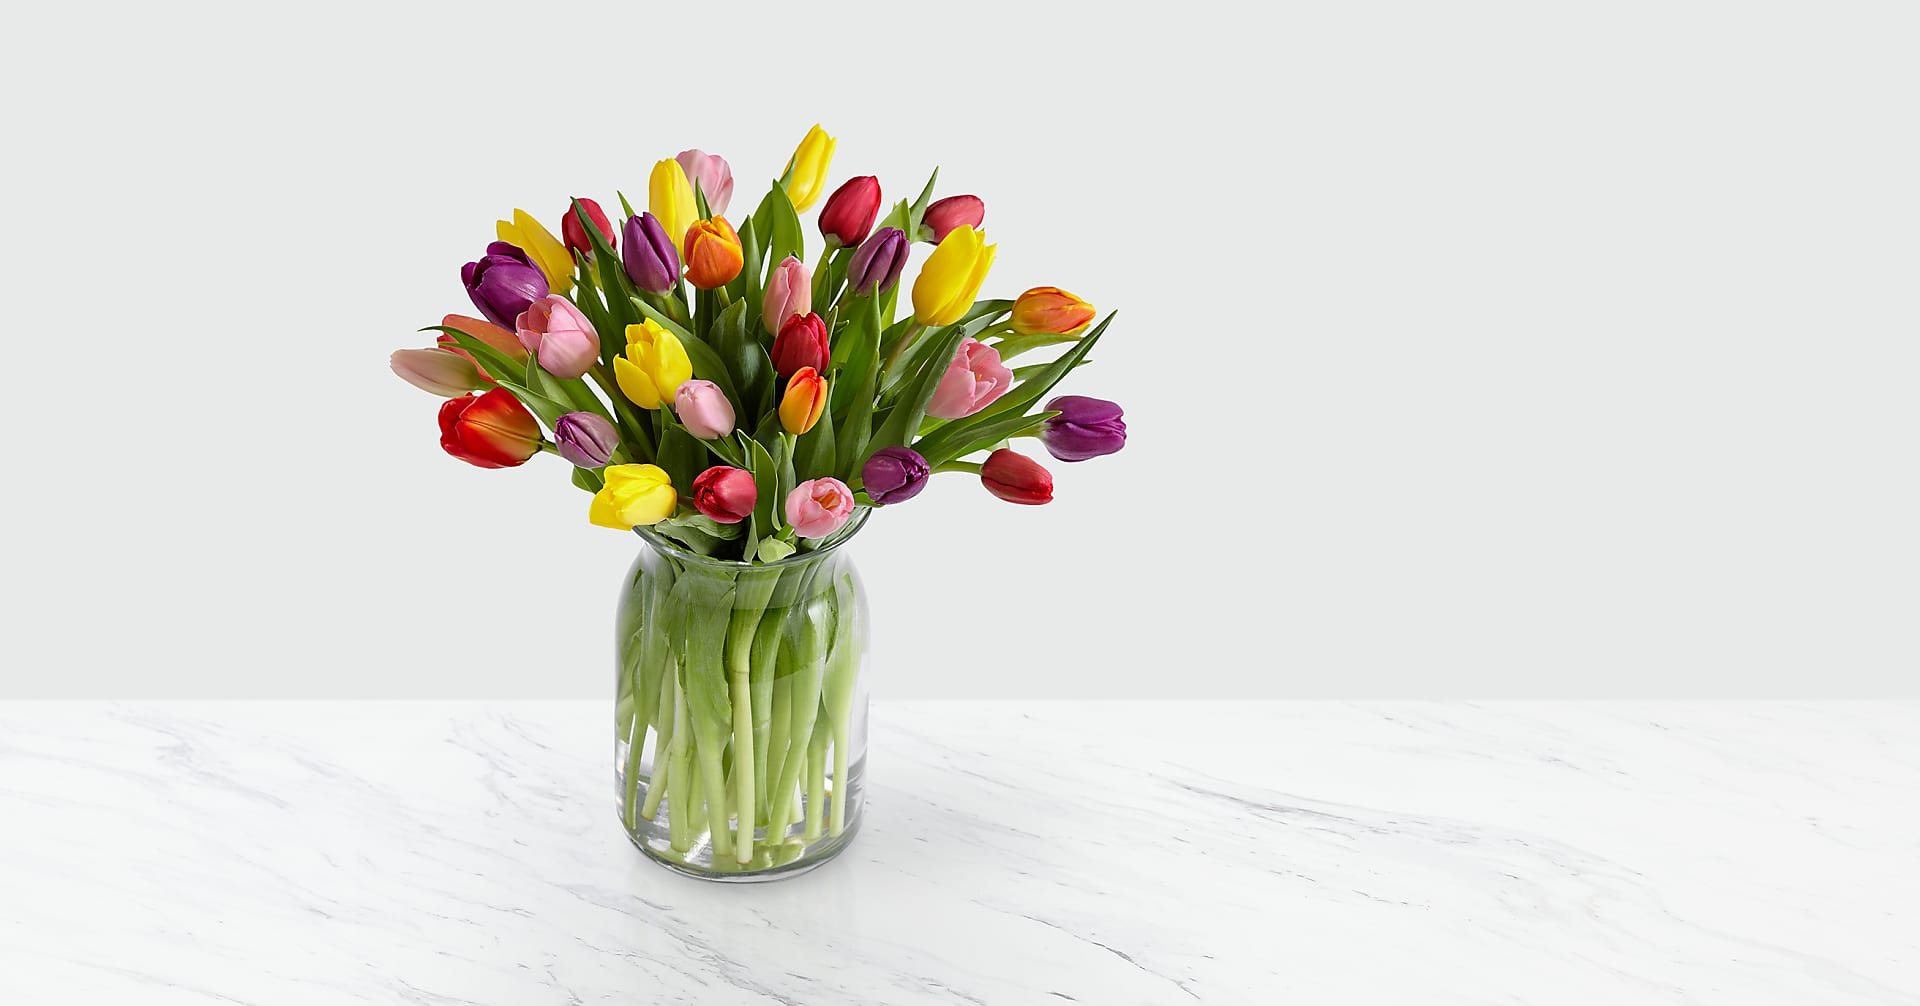 Rush of Color Assorted Tulip Bouquet - 30 Stems - VASE INCLUDED - Image 1 Of 5